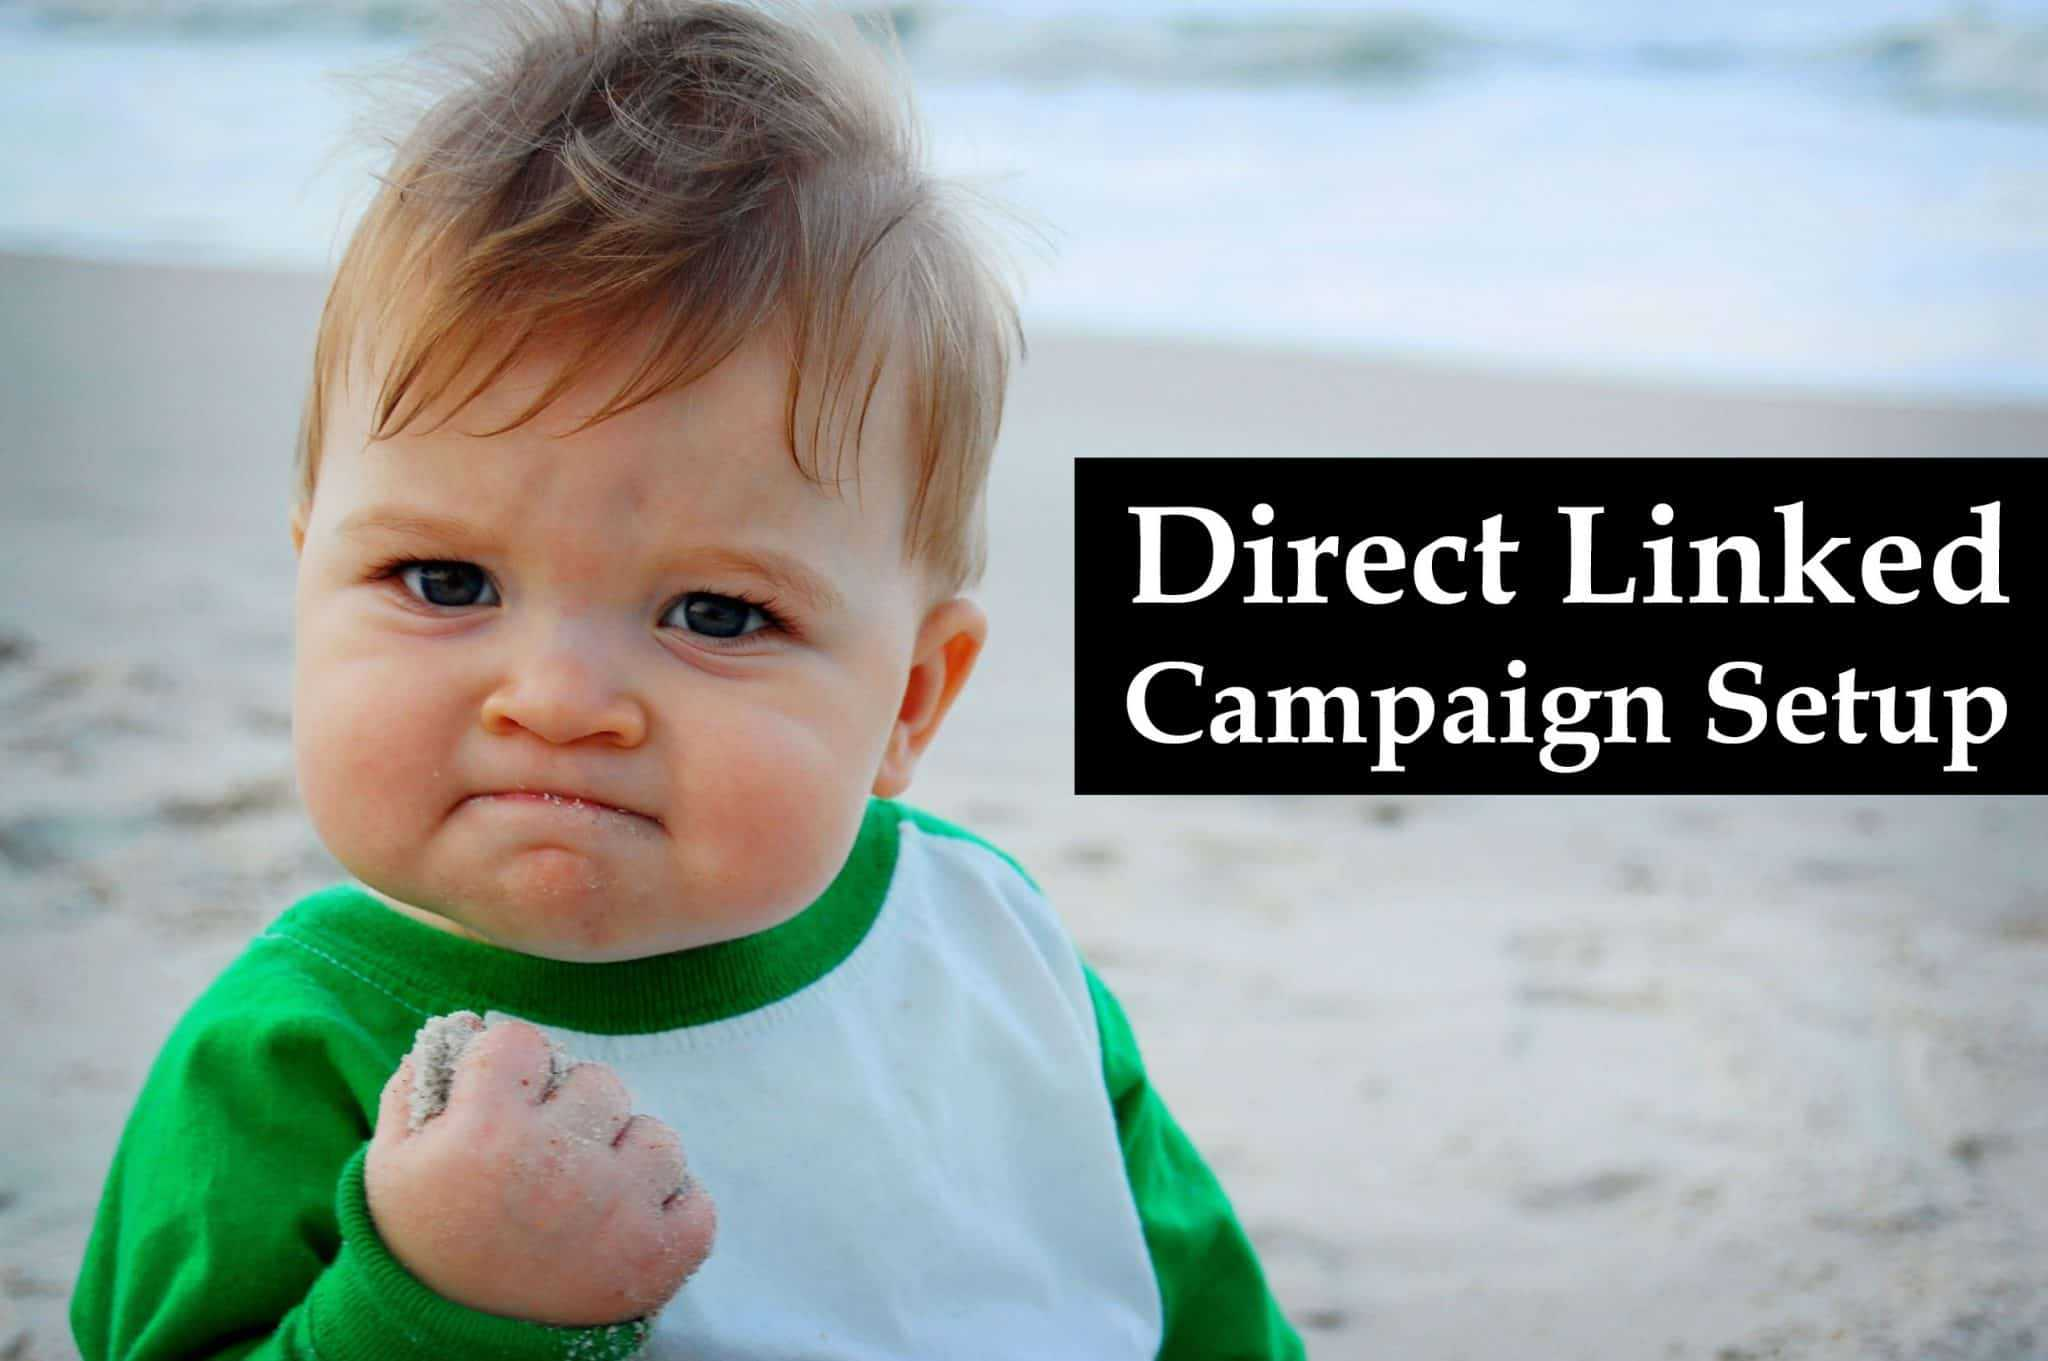 How to create a direct linked campaign on Thrive?